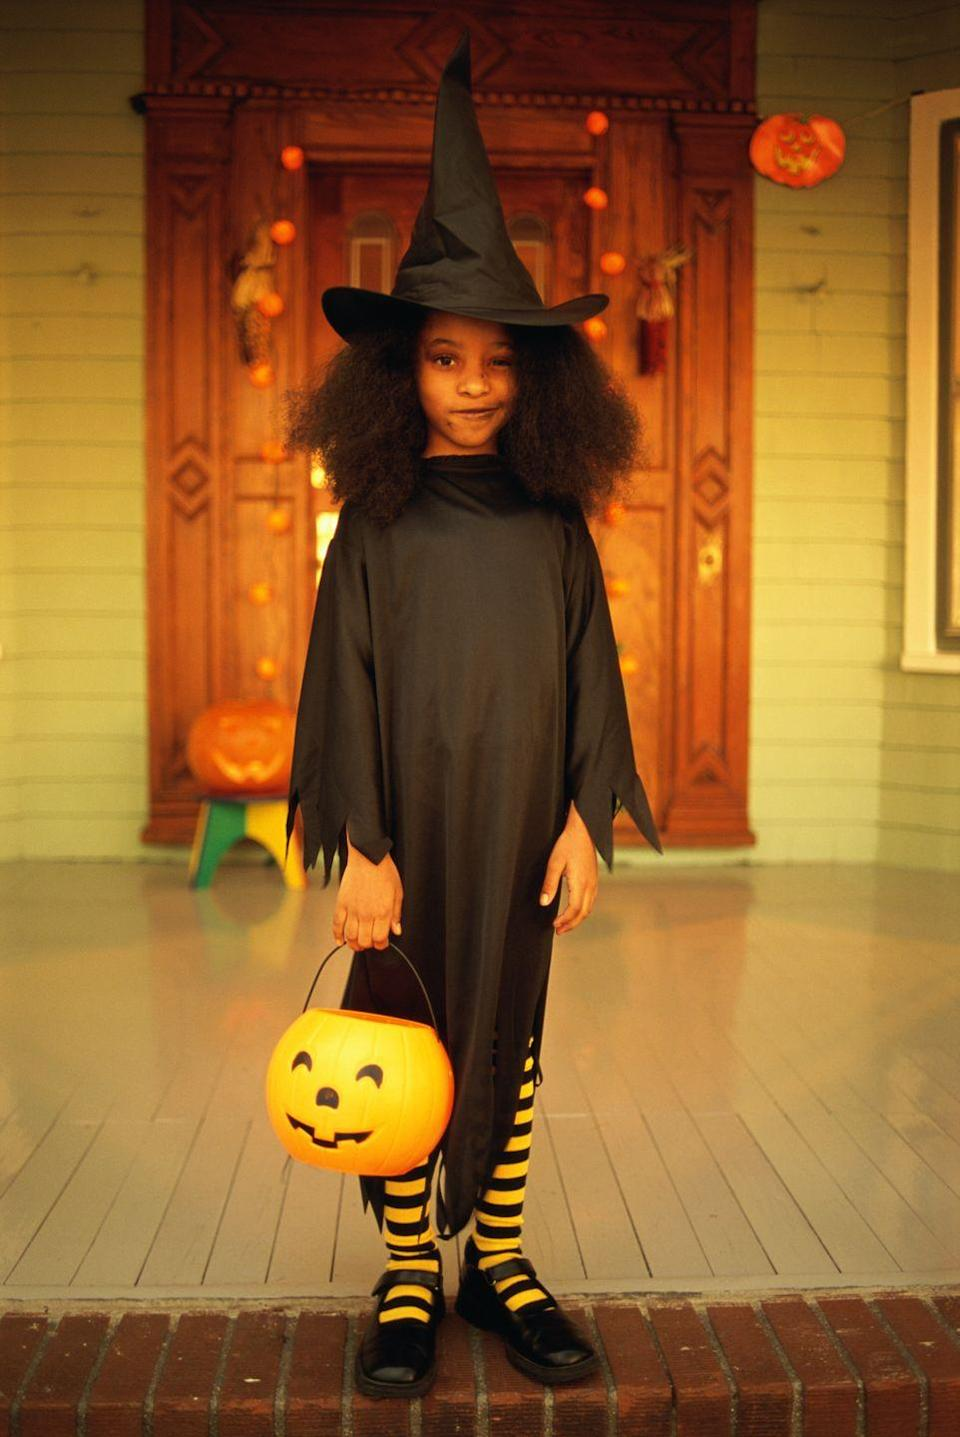 """<p>A simple store-bought witch costume stands out from the crowd, thanks to a pair of yellow and black striped tights. </p><p><a class=""""link rapid-noclick-resp"""" href=""""https://www.amazon.com/Fun-World-Little-Childrens-Costume/dp/B001ENBFT2?tag=syn-yahoo-20&ascsubtag=%5Bartid%7C10072.g.33534666%5Bsrc%7Cyahoo-us"""" rel=""""nofollow noopener"""" target=""""_blank"""" data-ylk=""""slk:SHOP WITCH COSTUME"""">SHOP WITCH COSTUME</a></p><p><a class=""""link rapid-noclick-resp"""" href=""""https://www.amazon.com/Rubies-Striped-Child-Bumble-Tights/dp/B000VLO9JQ?tag=syn-yahoo-20&ascsubtag=%5Bartid%7C10072.g.33534666%5Bsrc%7Cyahoo-us"""" rel=""""nofollow noopener"""" target=""""_blank"""" data-ylk=""""slk:SHOP STRIPED TIGHTS"""">SHOP STRIPED TIGHTS</a></p>"""